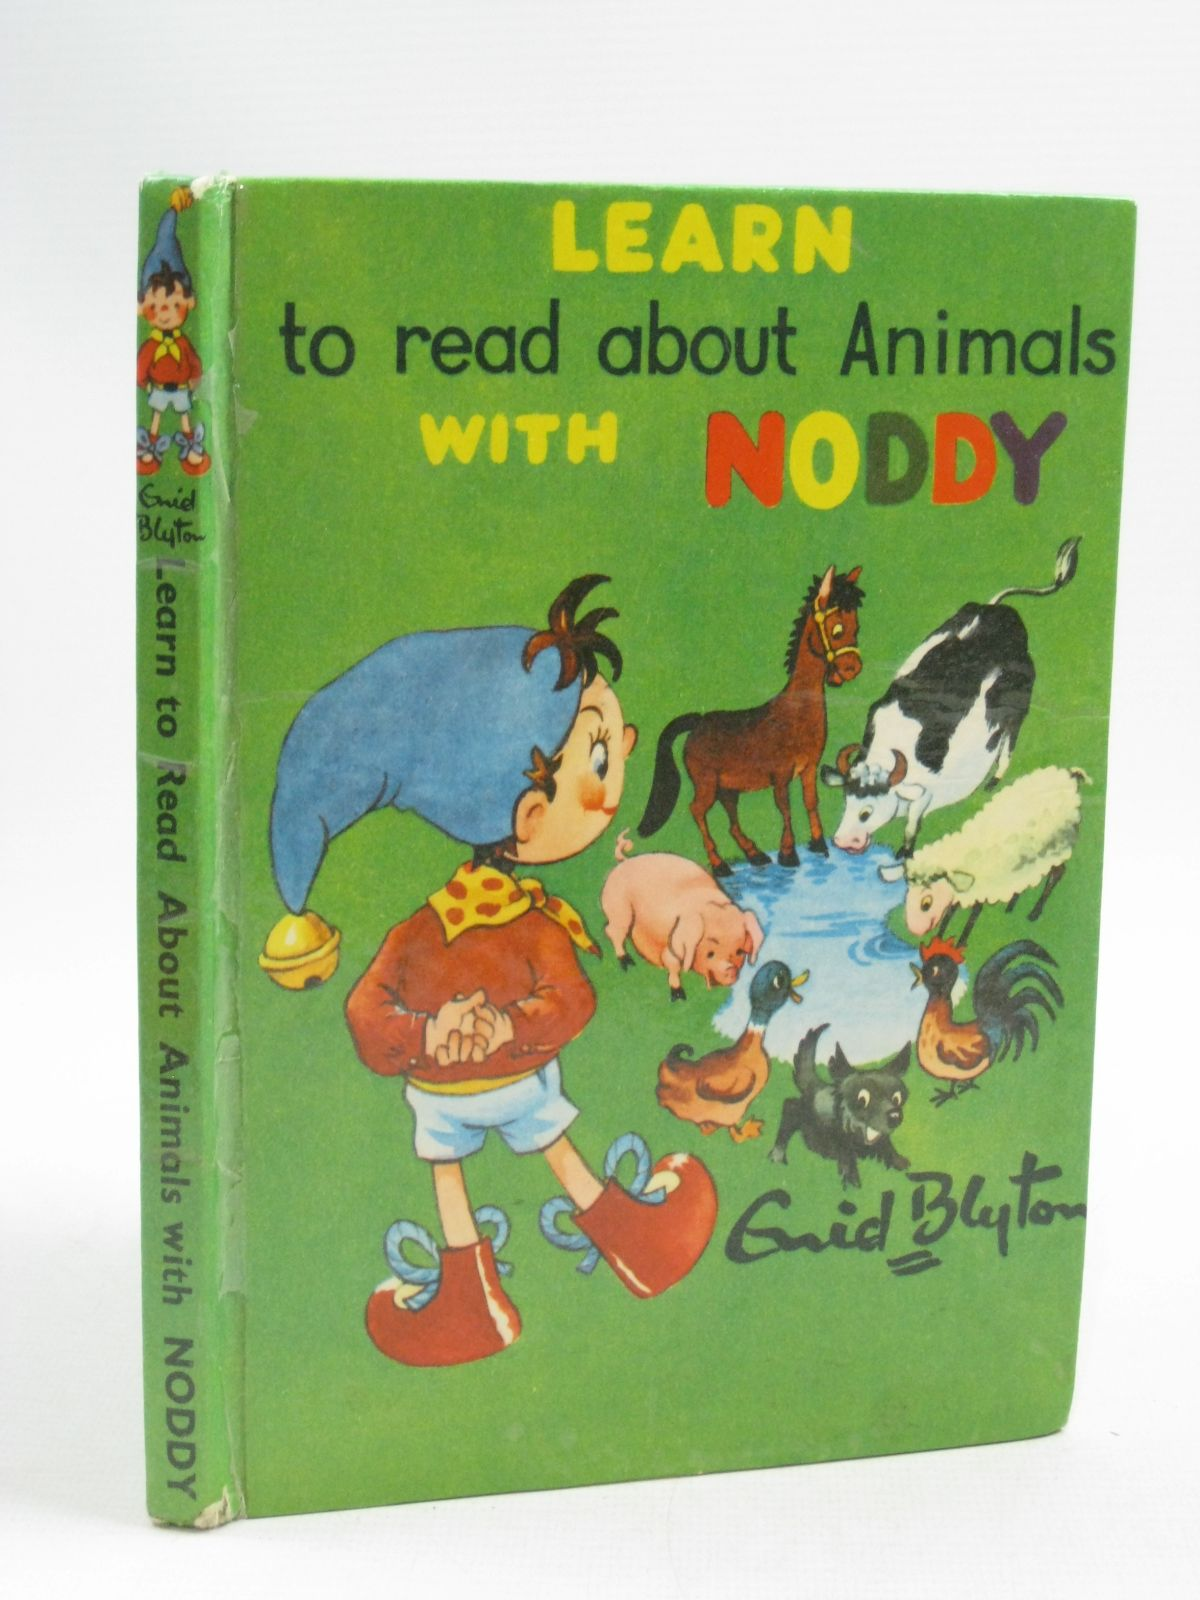 Photo of LEARN TO READ ABOUT ANIMALS WITH NODDY written by Blyton, Enid published by Sampson Low, Marston & Co. Ltd., The Richards Press Ltd. (STOCK CODE: 1315169)  for sale by Stella & Rose's Books